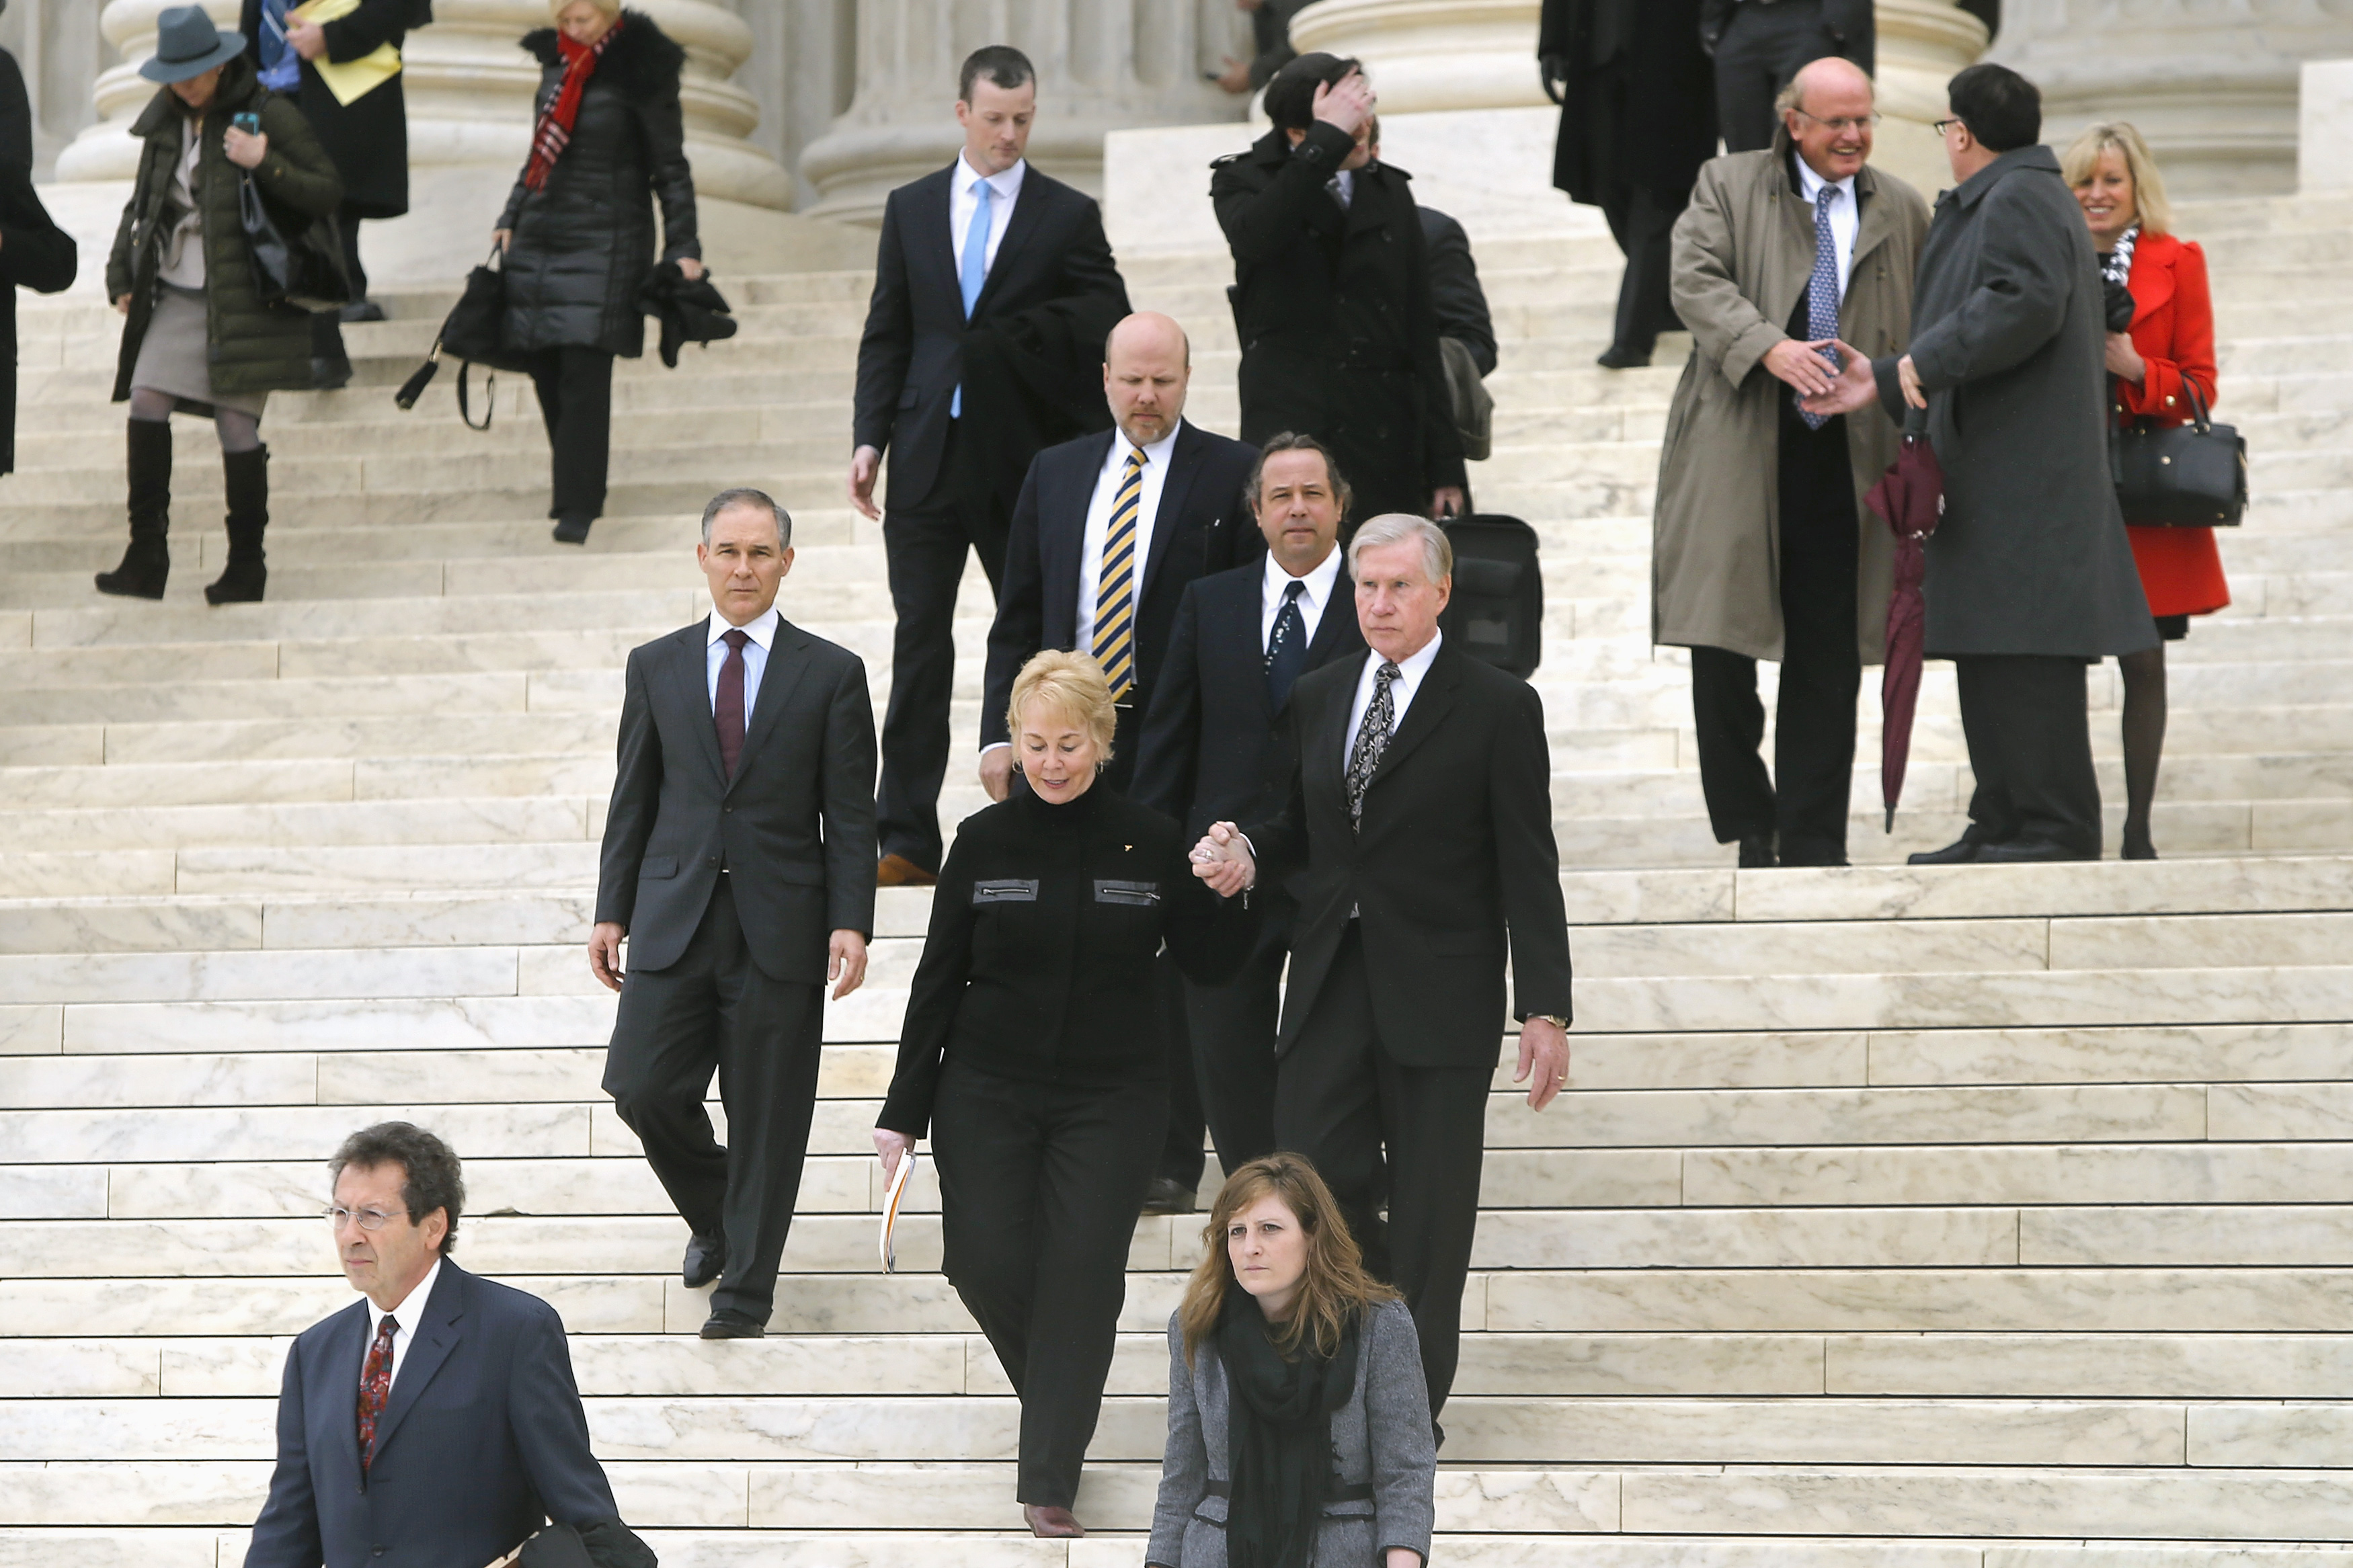 Members of the King v. Burwell plaintiffs' legal team exit the Supreme Court building after arguments in Washington, March 4, 2015. A recent poll shows few Americans have faith in the Court's ability to rule fairly on the case, which is the latest challenge to the Affordable Care Act.